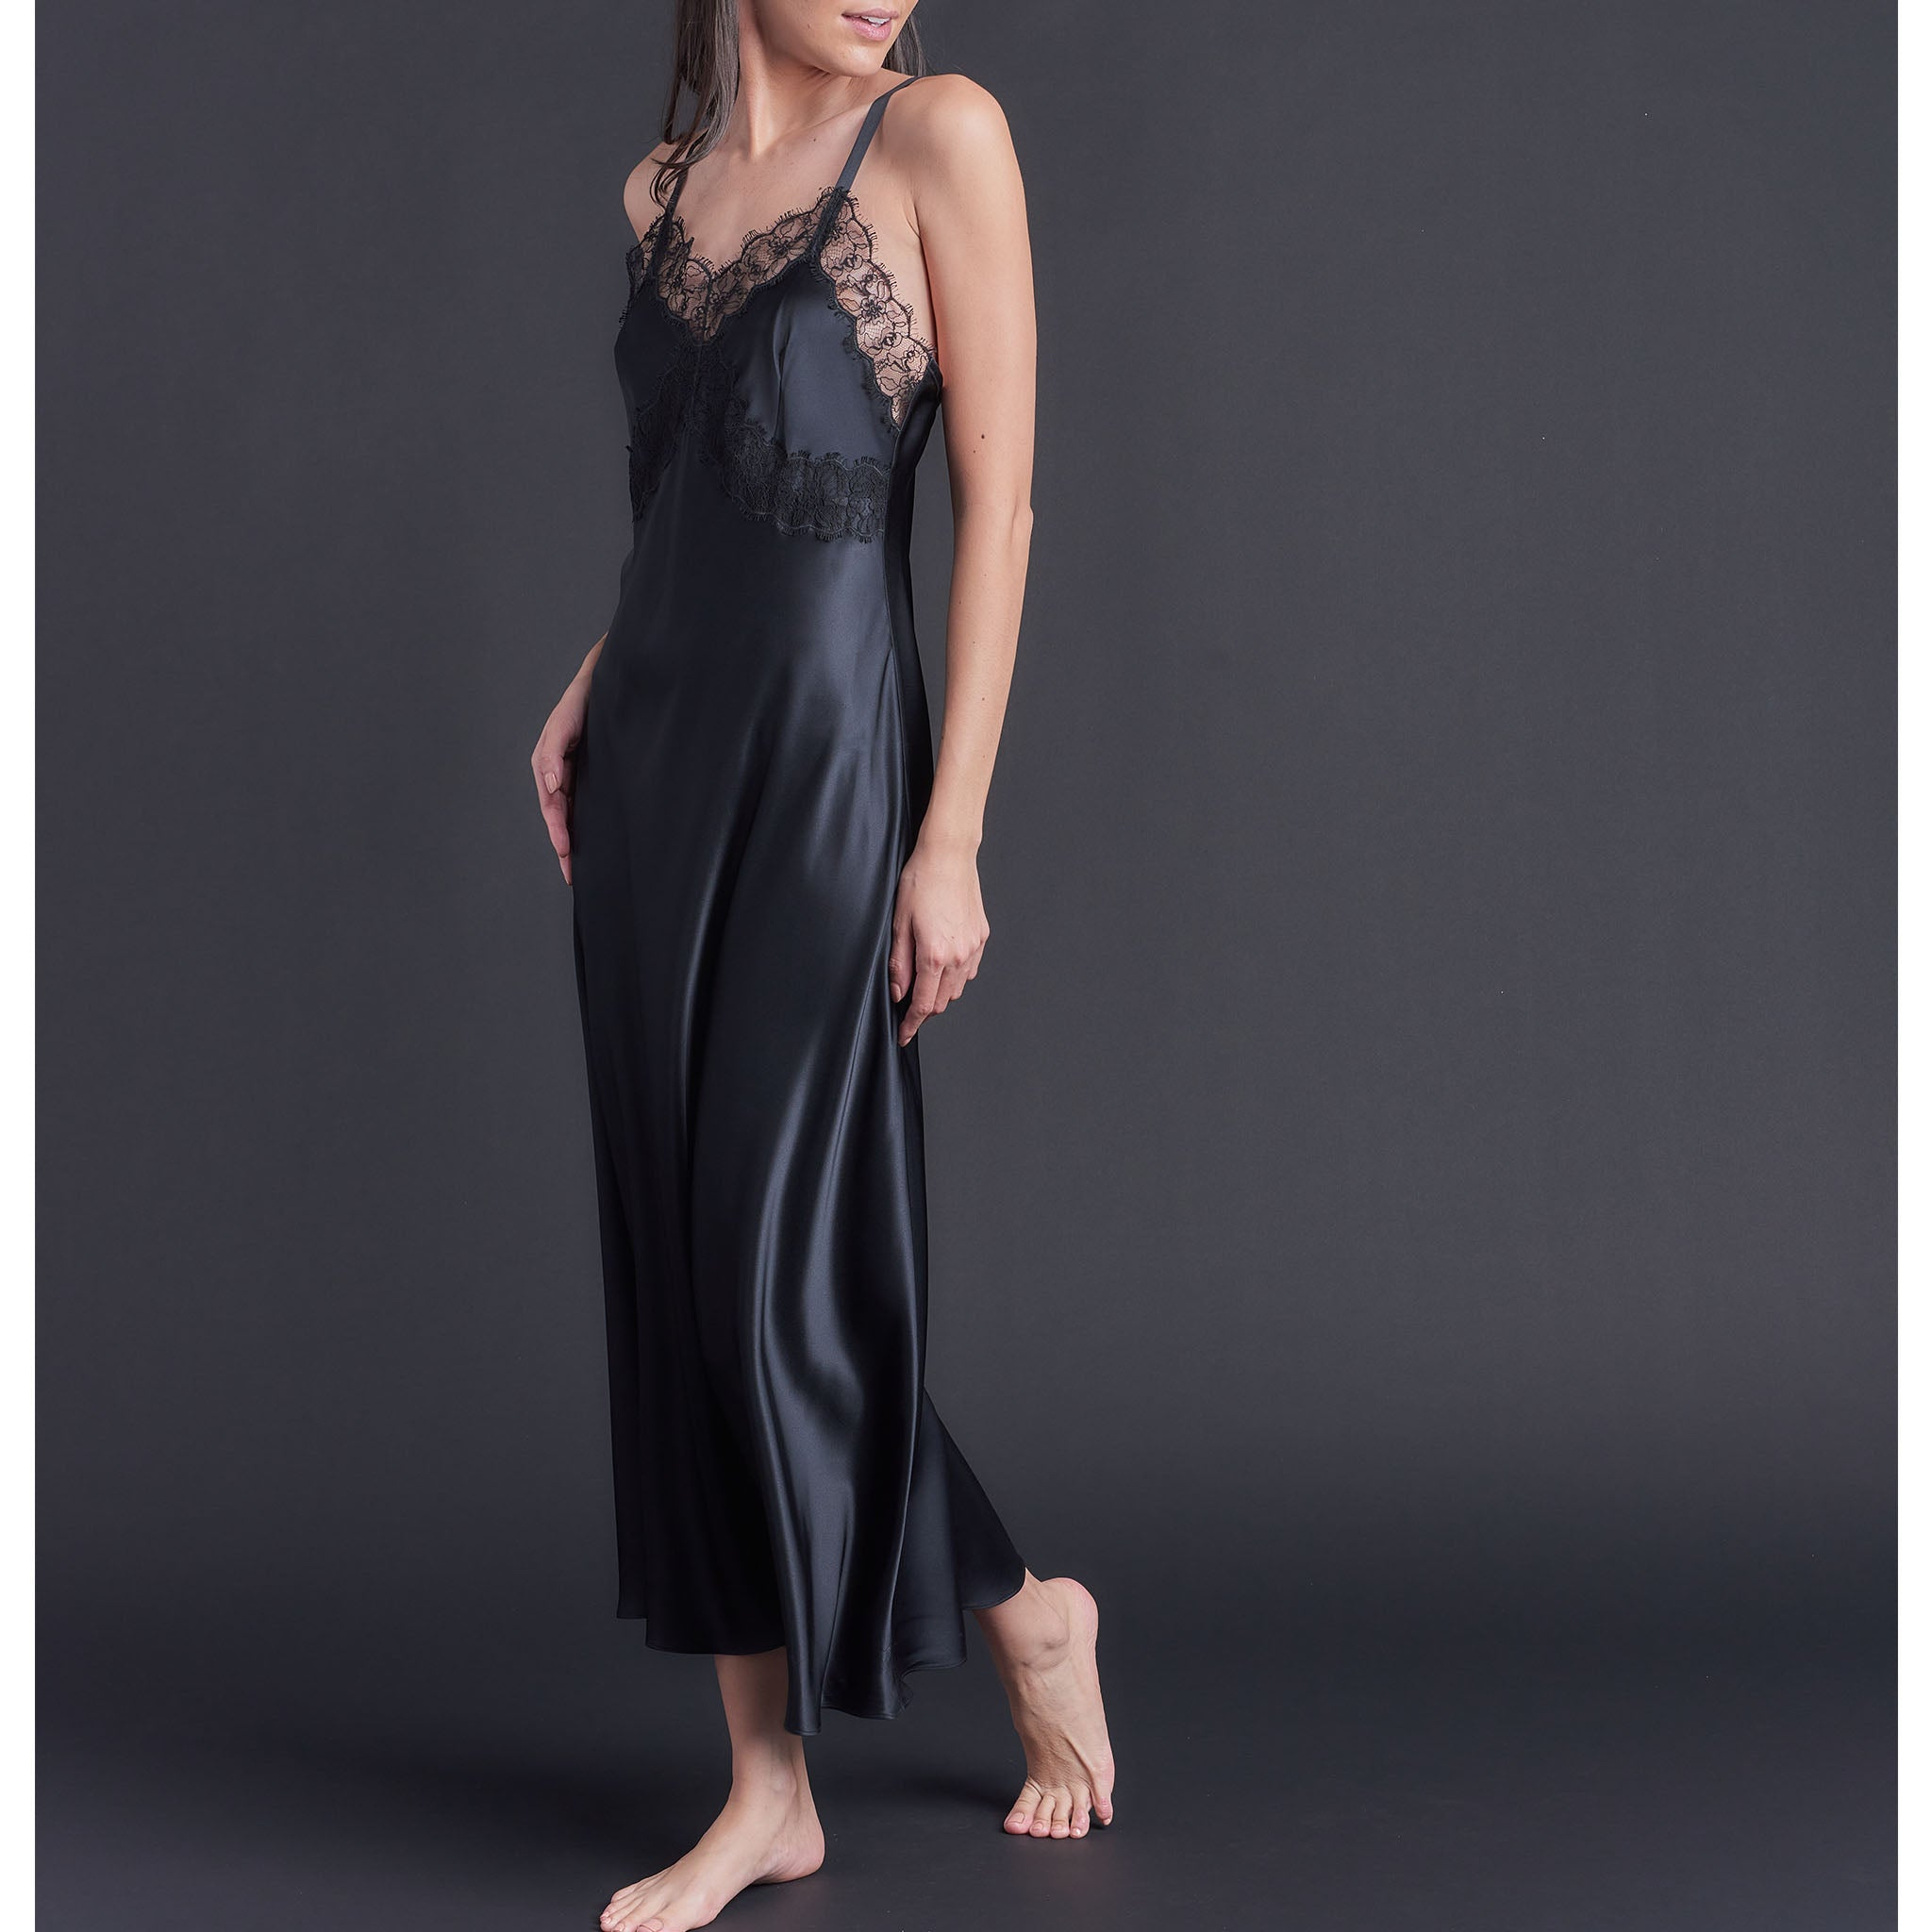 Marlayne Silk Charmeuse Slip in Black